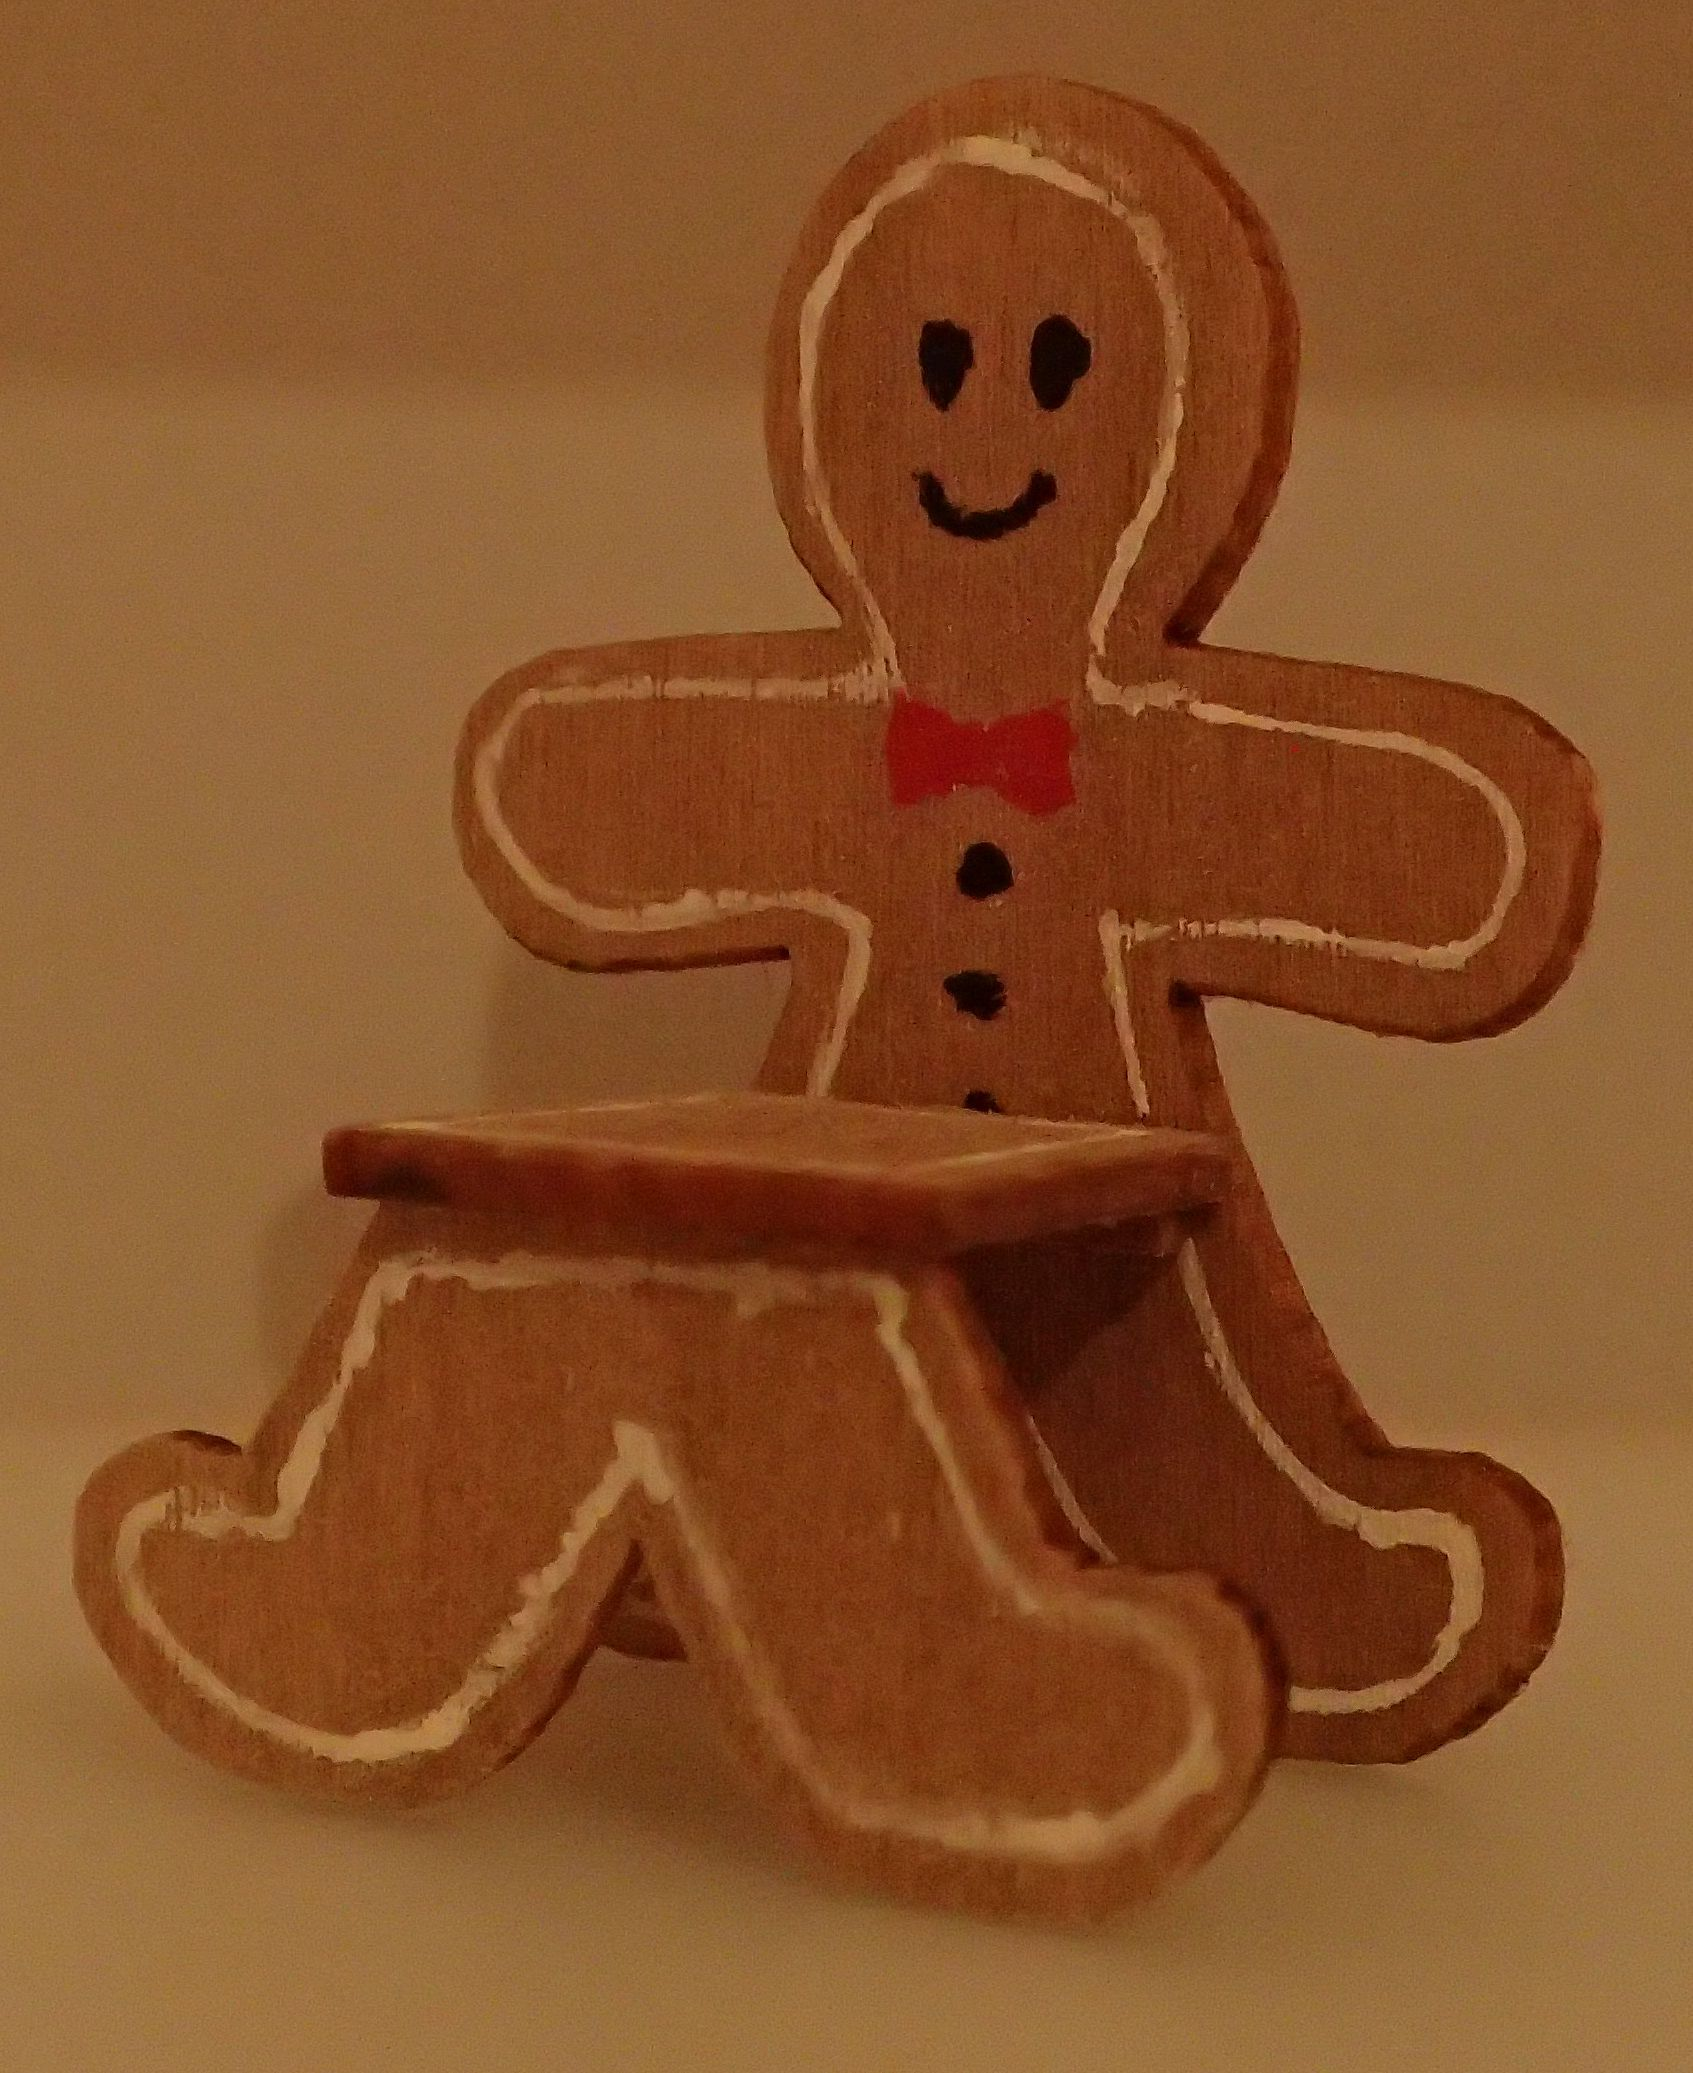 Gingerbread man chair kit in 112 and 124 scales (2015